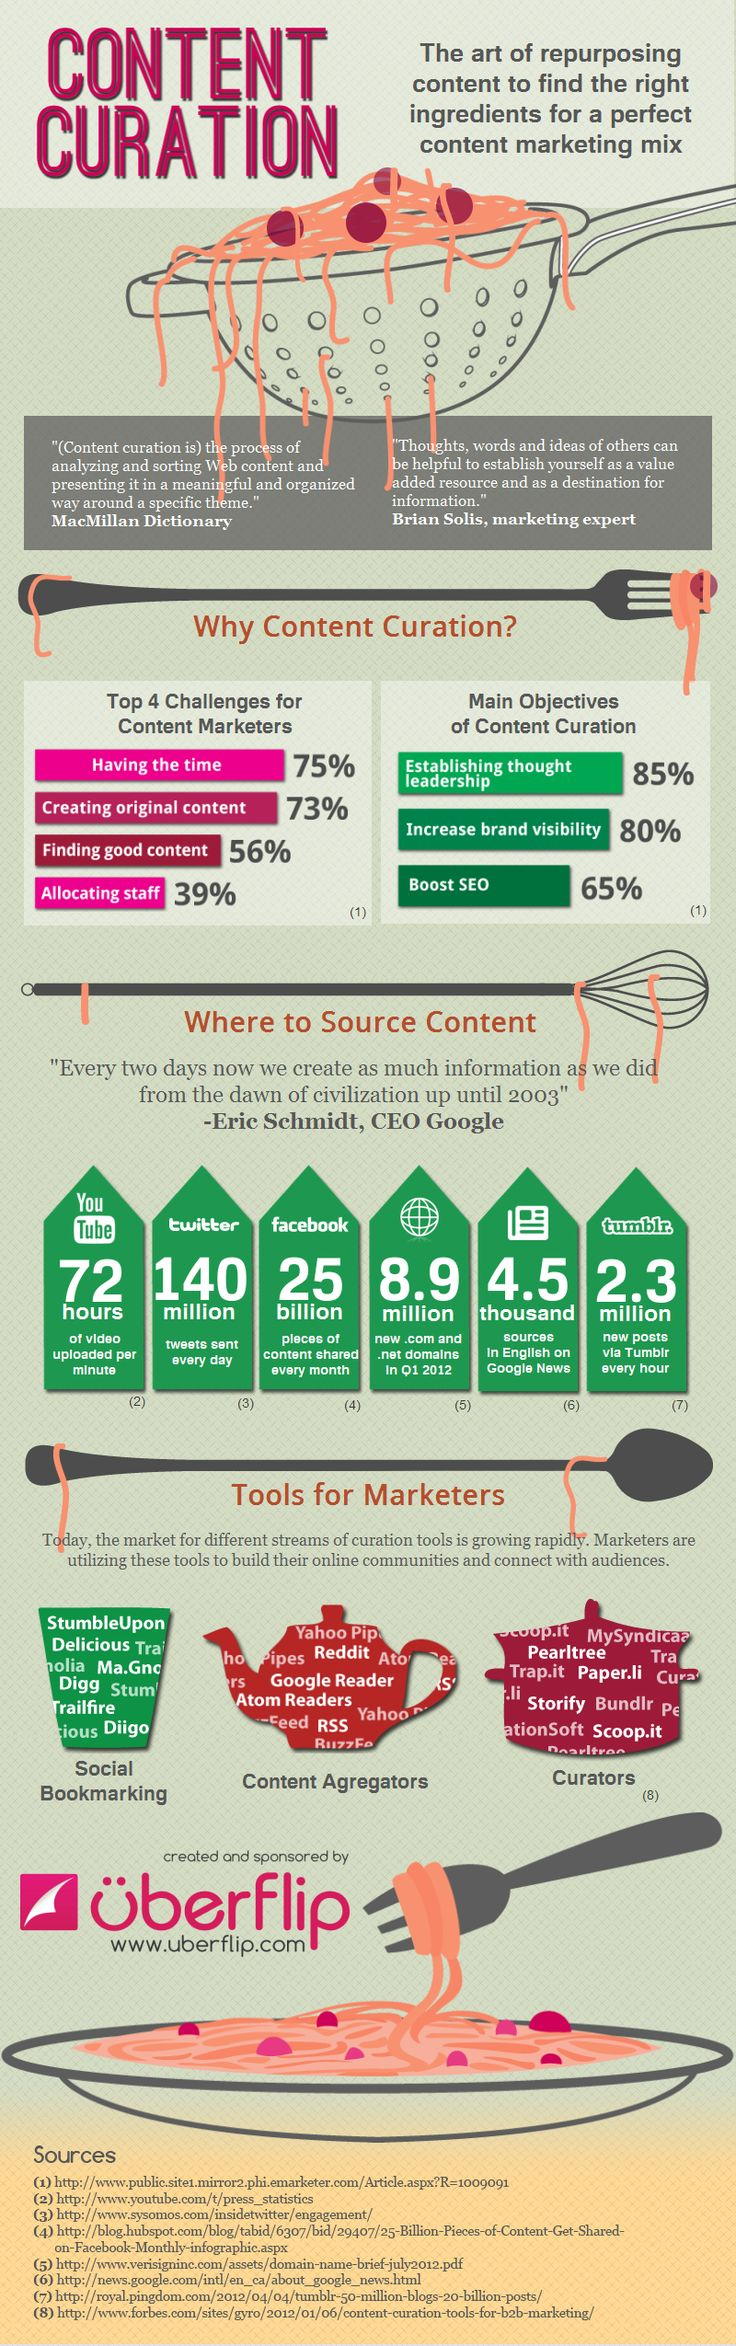 Using Content Curation as a Source for Perfect Content Marketing MixMarketing Strategies, Perfect Content, Marketing Mixed, Social Media, Content Curator, Blog, Infographic, Socialmedia, Content Marketing